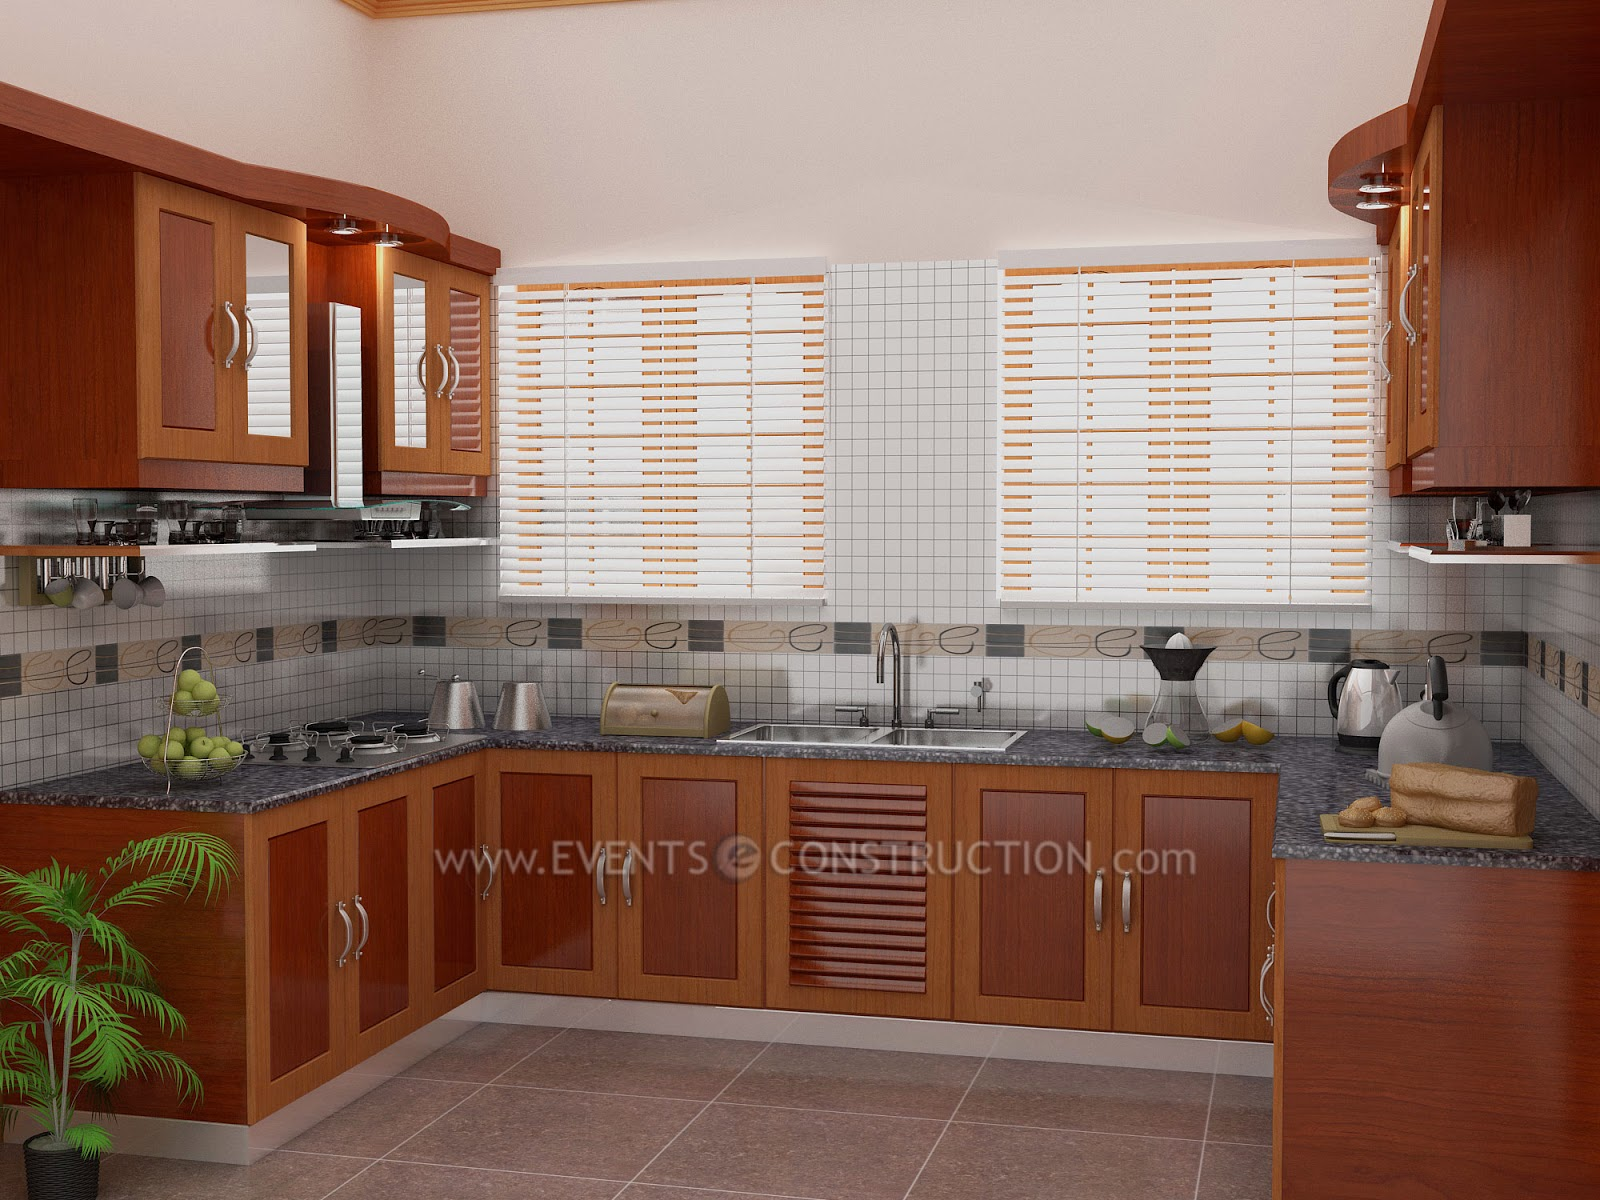 Perfect Kerala Style Kitchen Interior Designs Of Evens Construction Pvt Ltd Simple Kerala  Kitchen Design